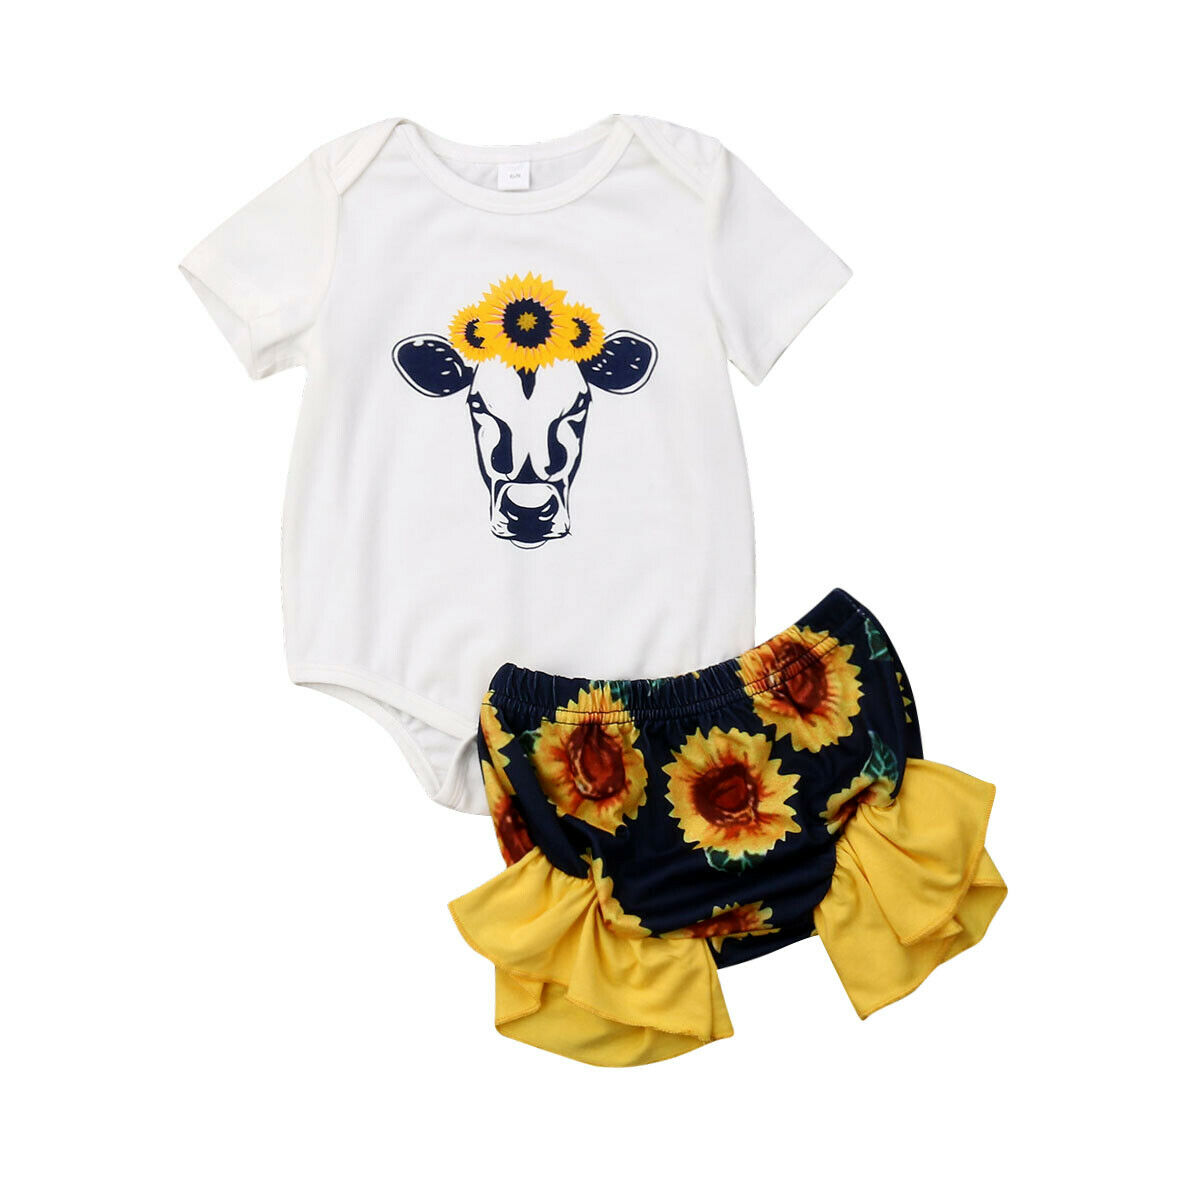 Adorable Newborn Baby Girls Sunflowers Outfits Clothes Cotton Shirt+Short Set US